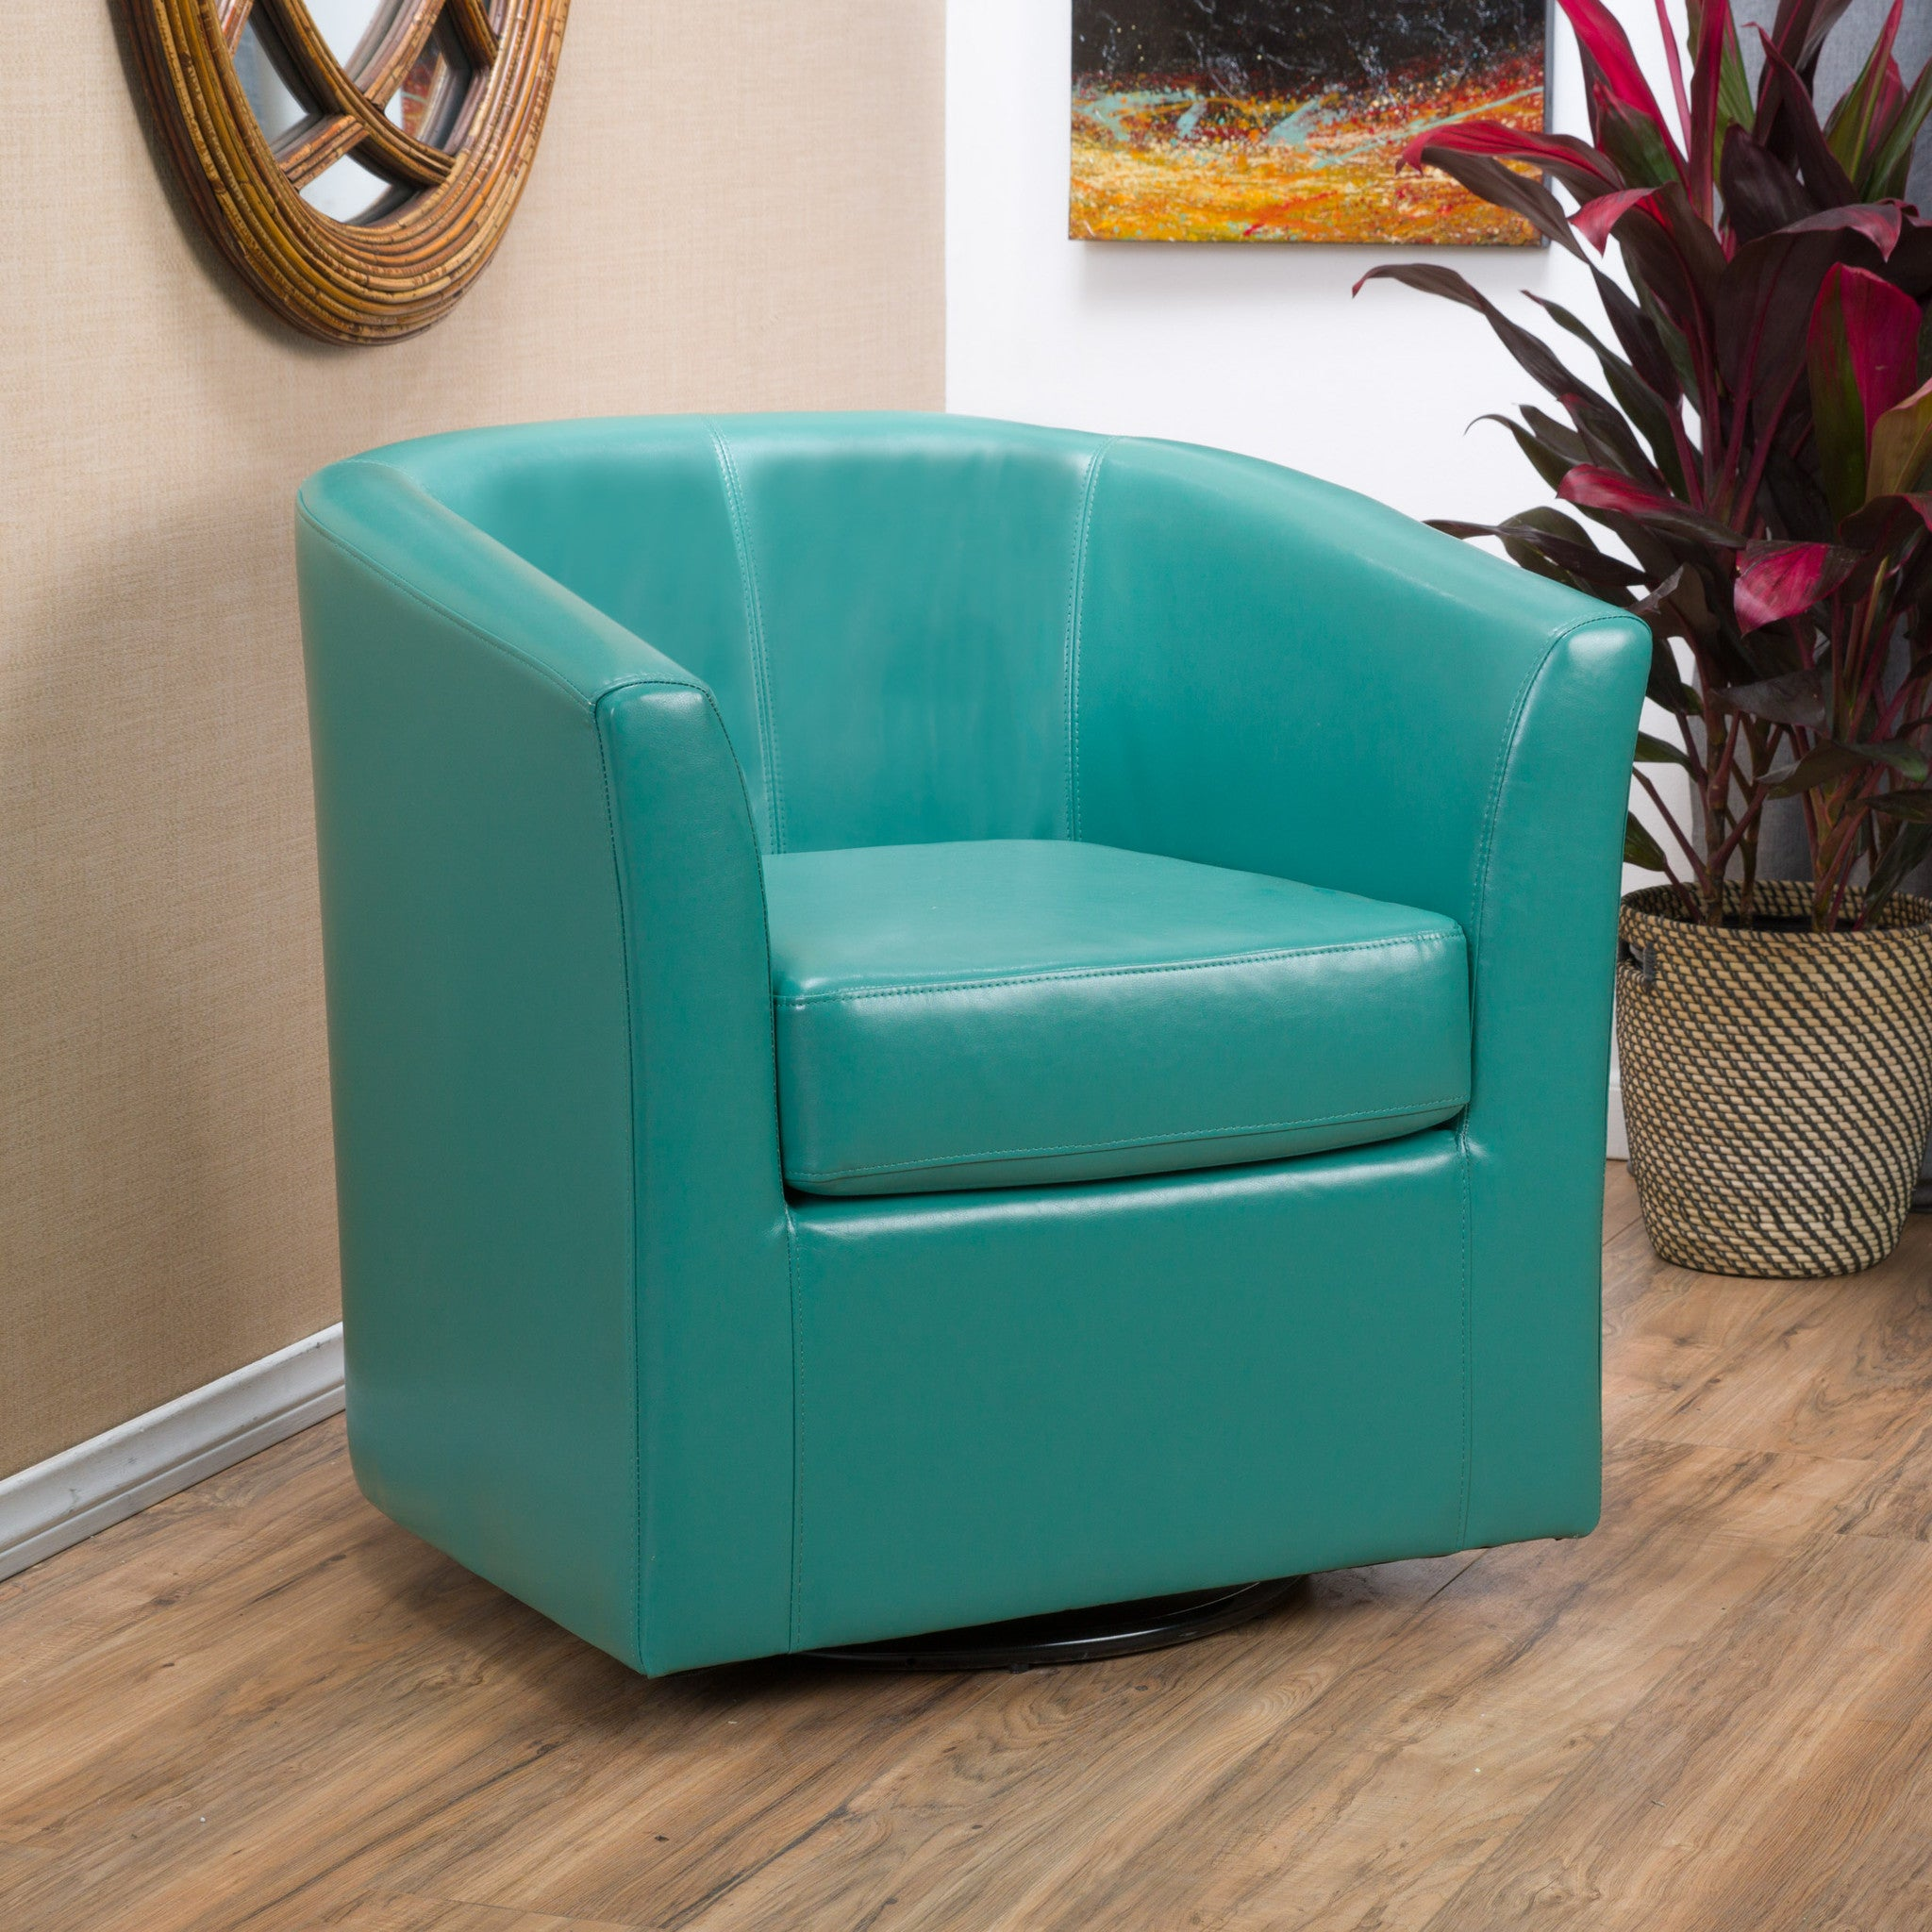 Corley Turquoise Leather Swivel Club Chair